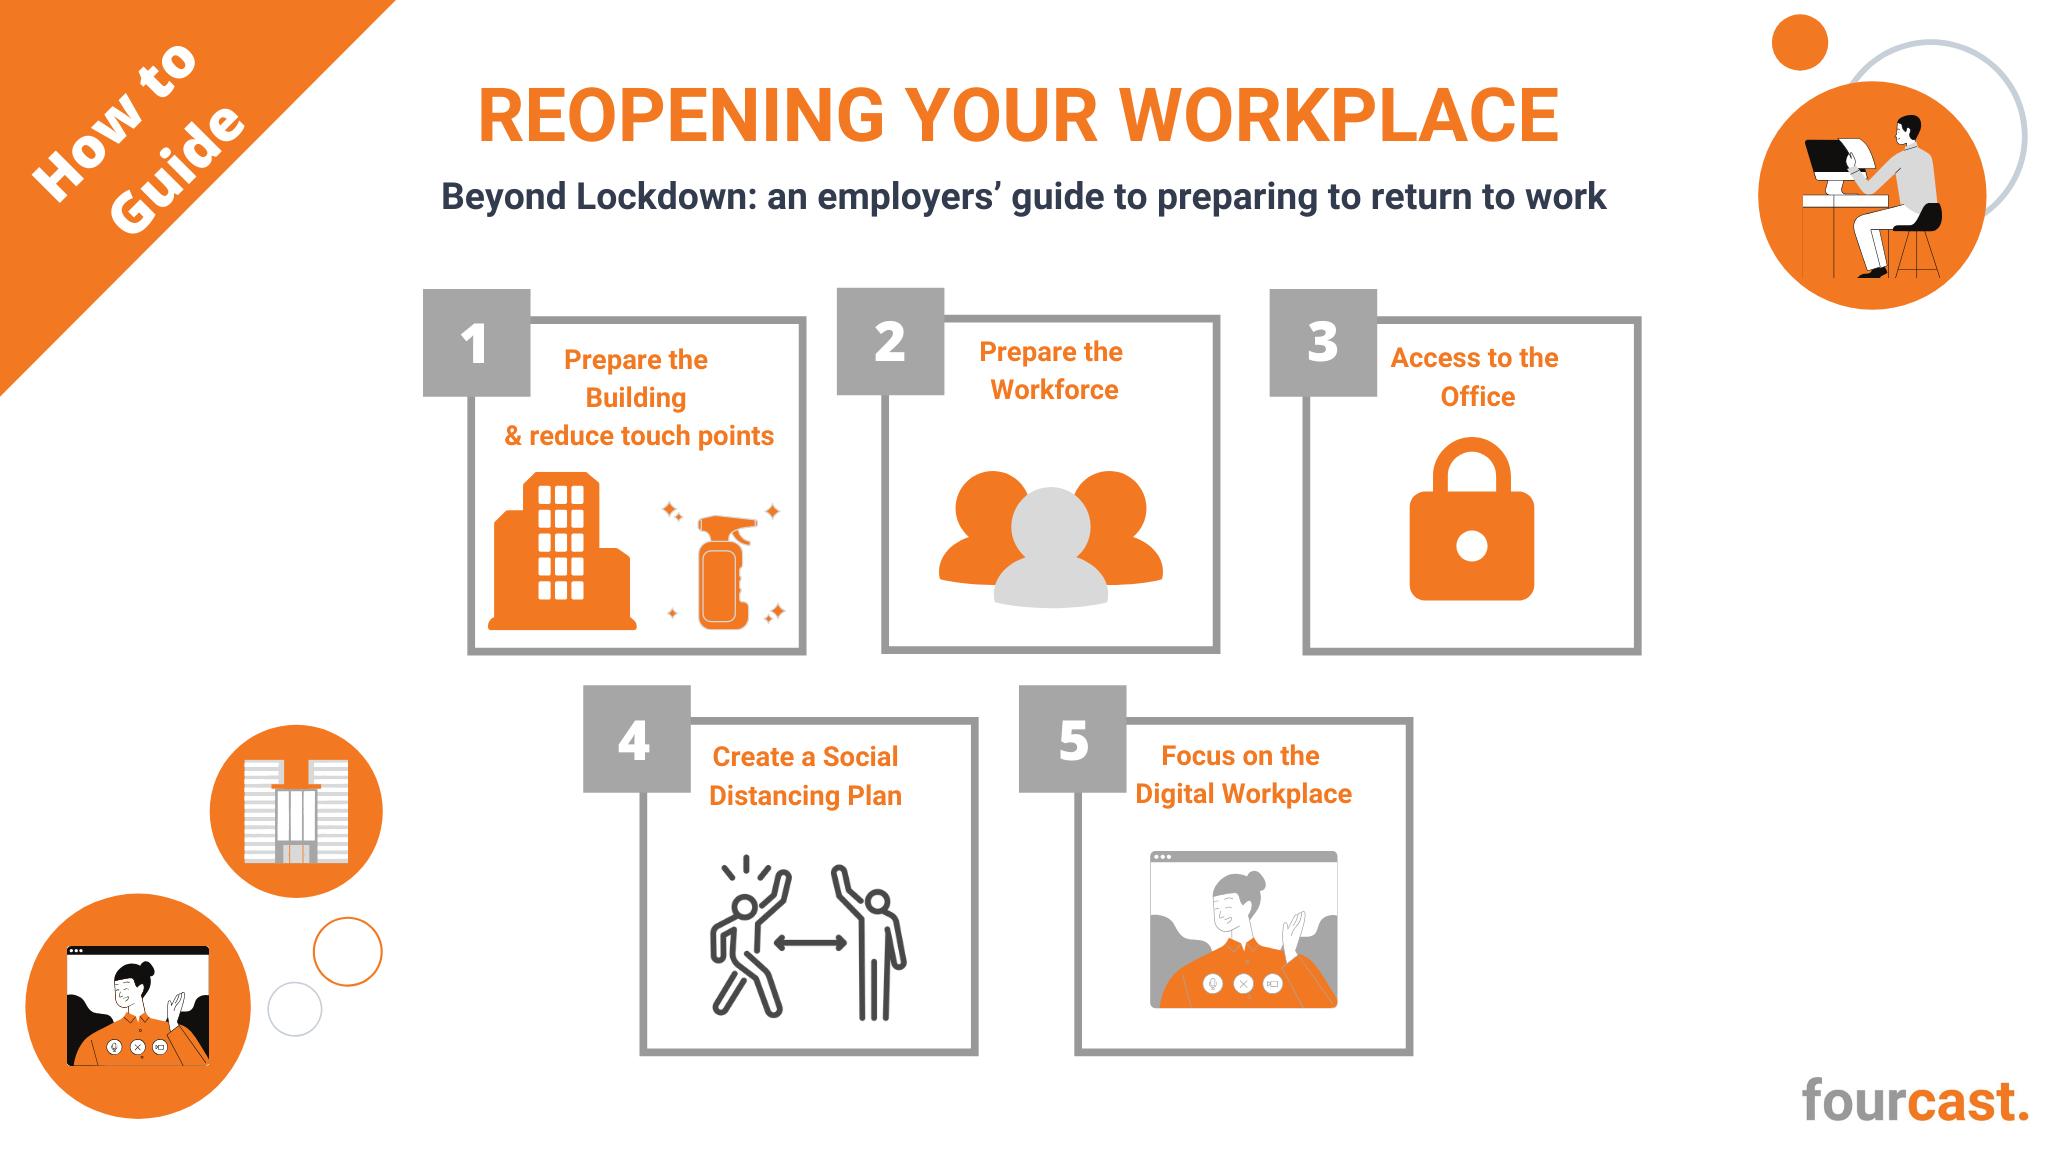 A How-to Guide for reopening your workplace